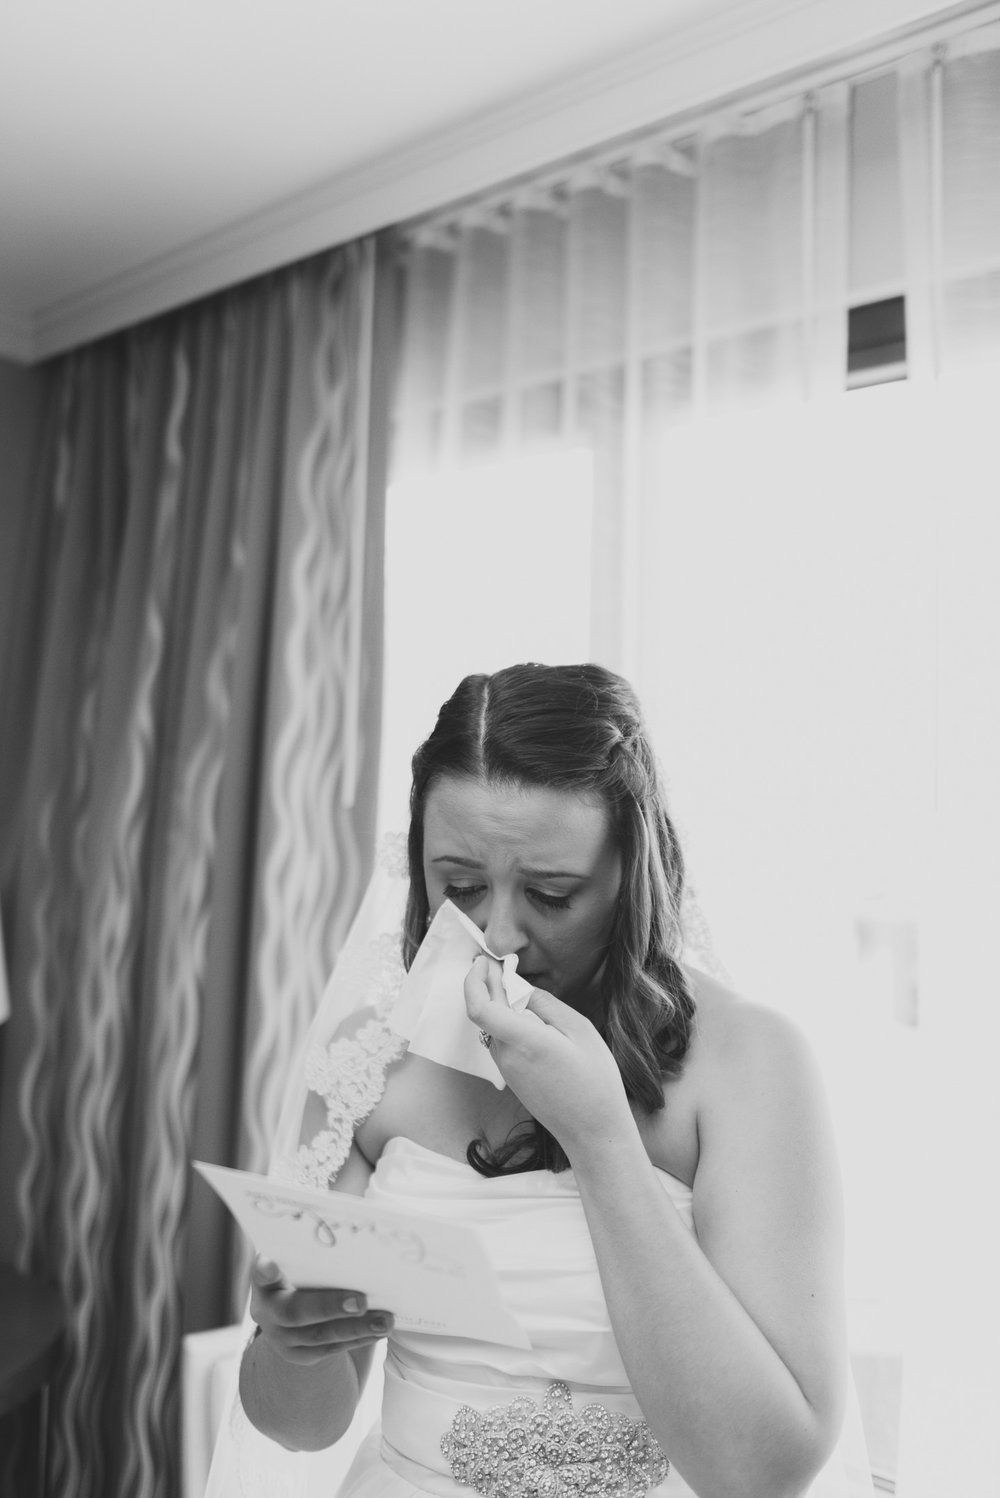 27elopement-photographer-colorado-Amanda&Sam-Denver_wedding-0318_bw.jpg